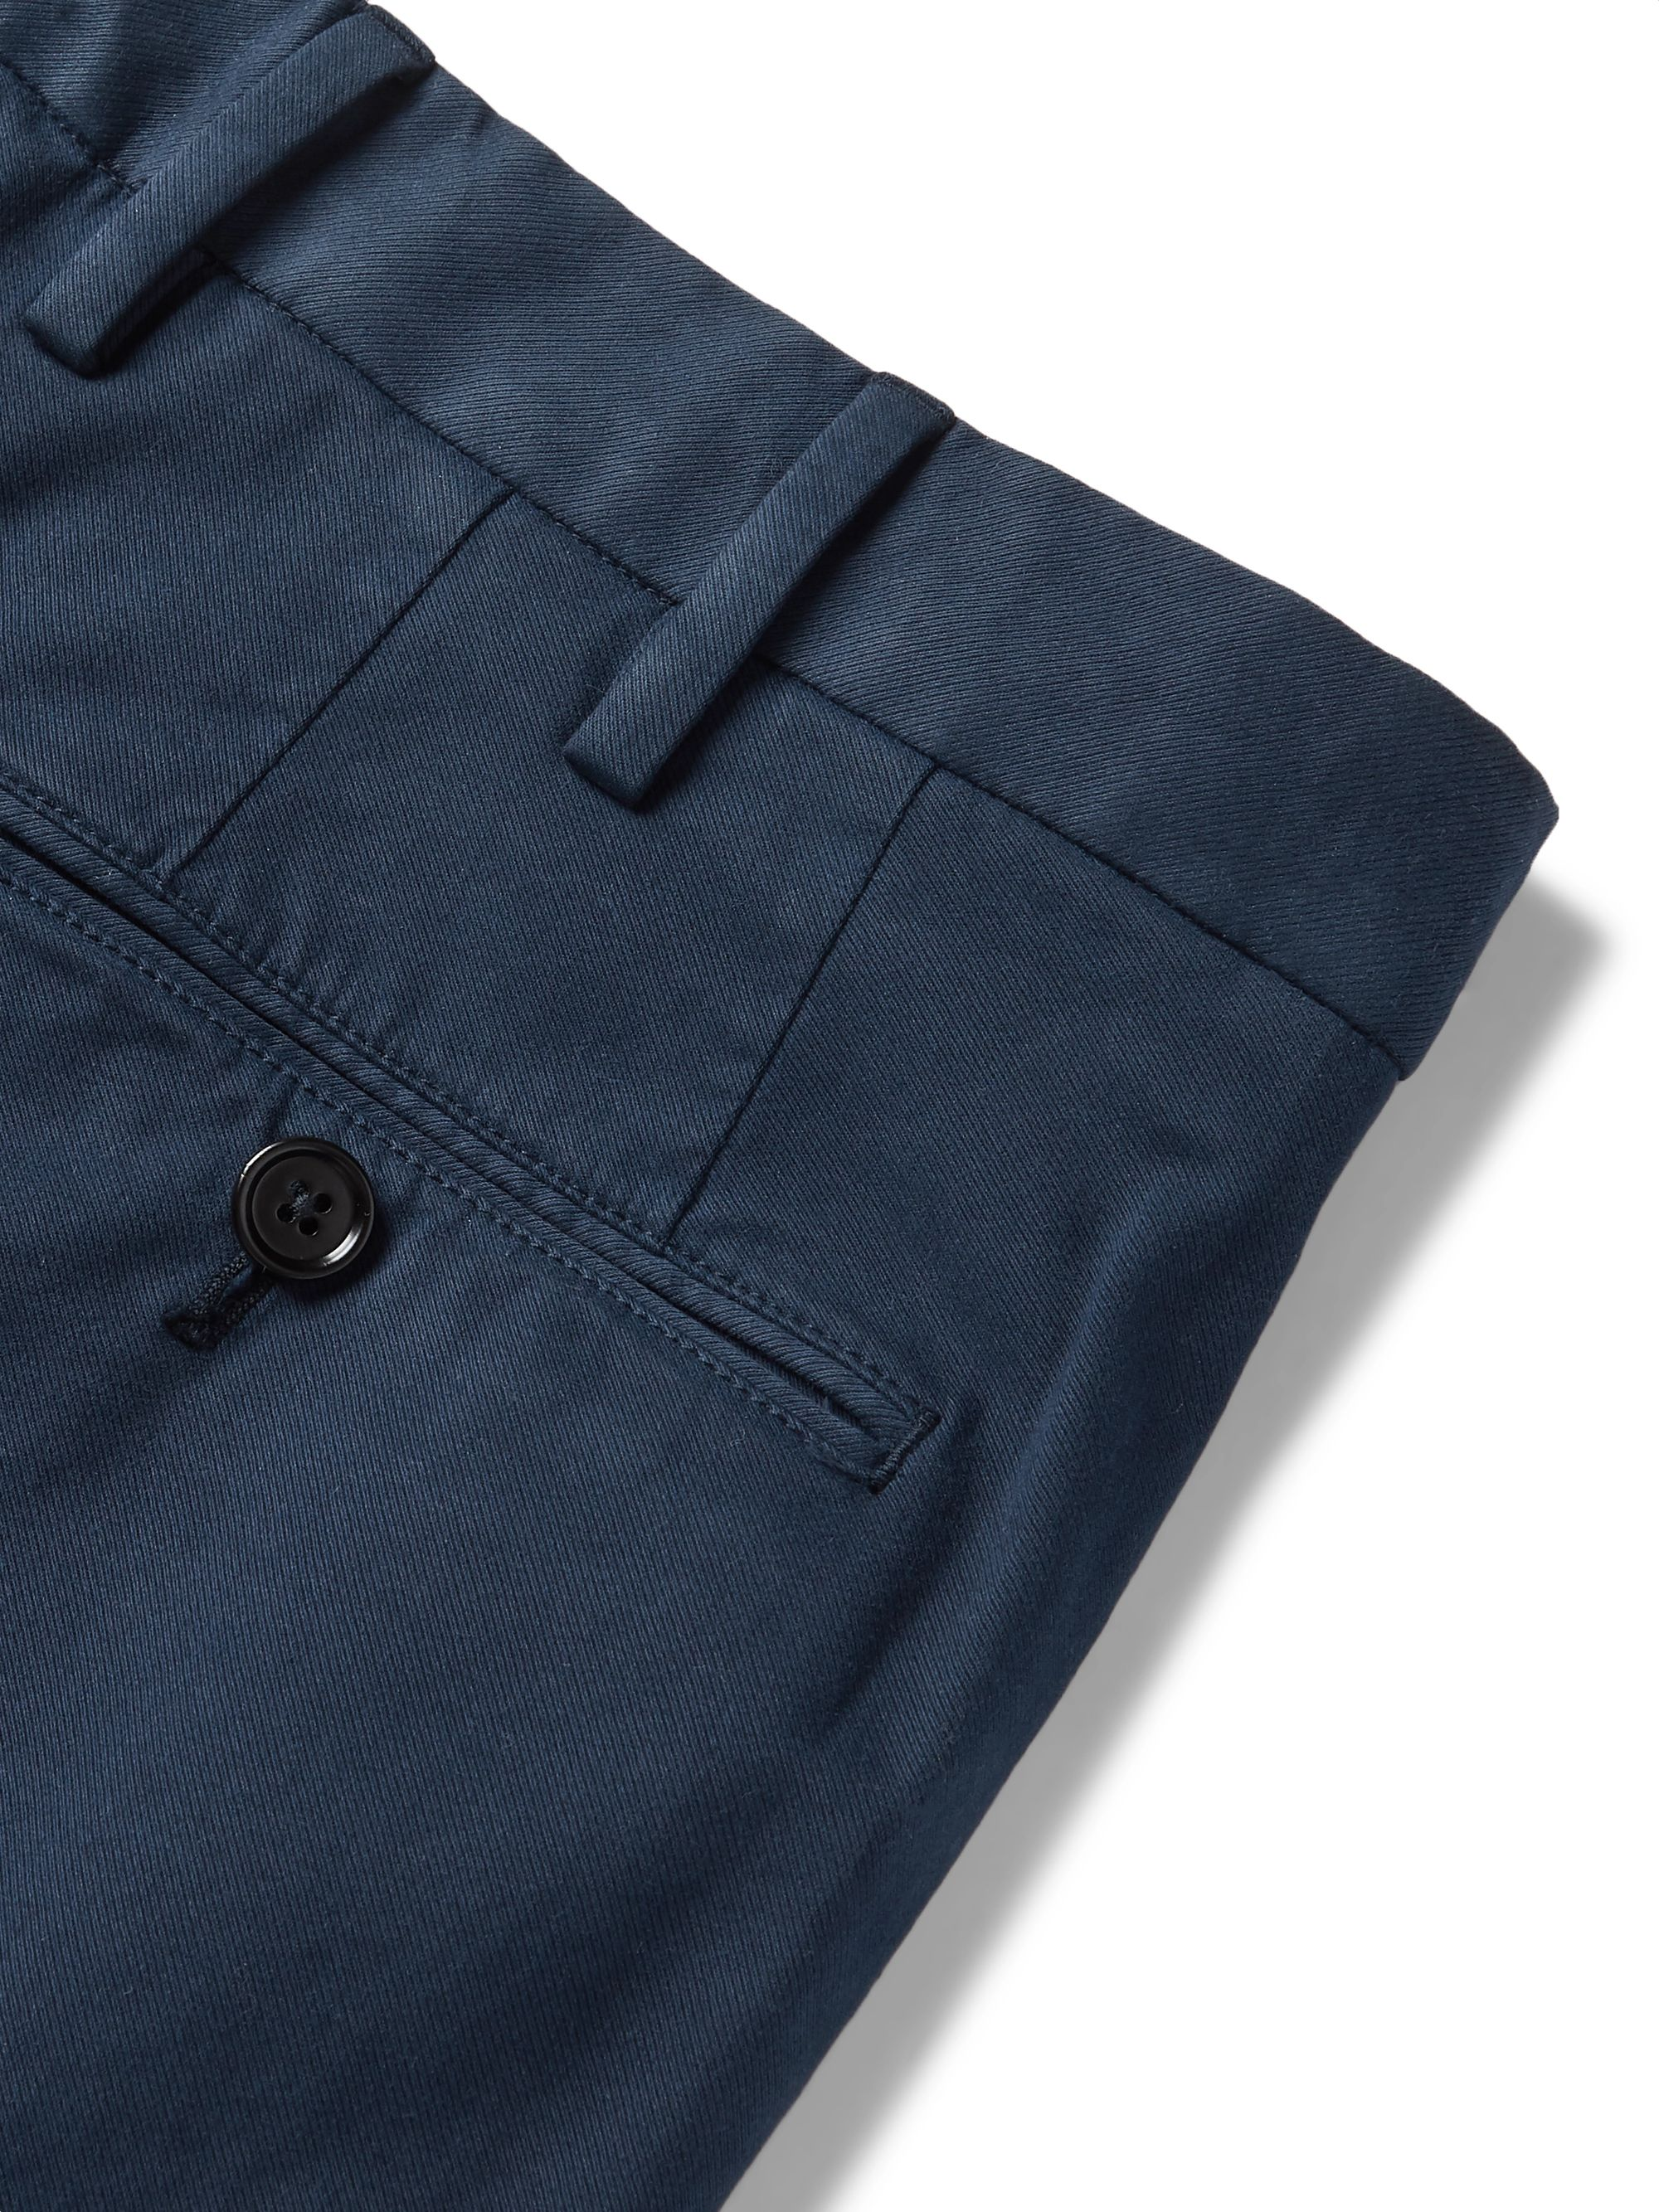 Ermenegildo Zegna Cotton-Blend Twill Trousers